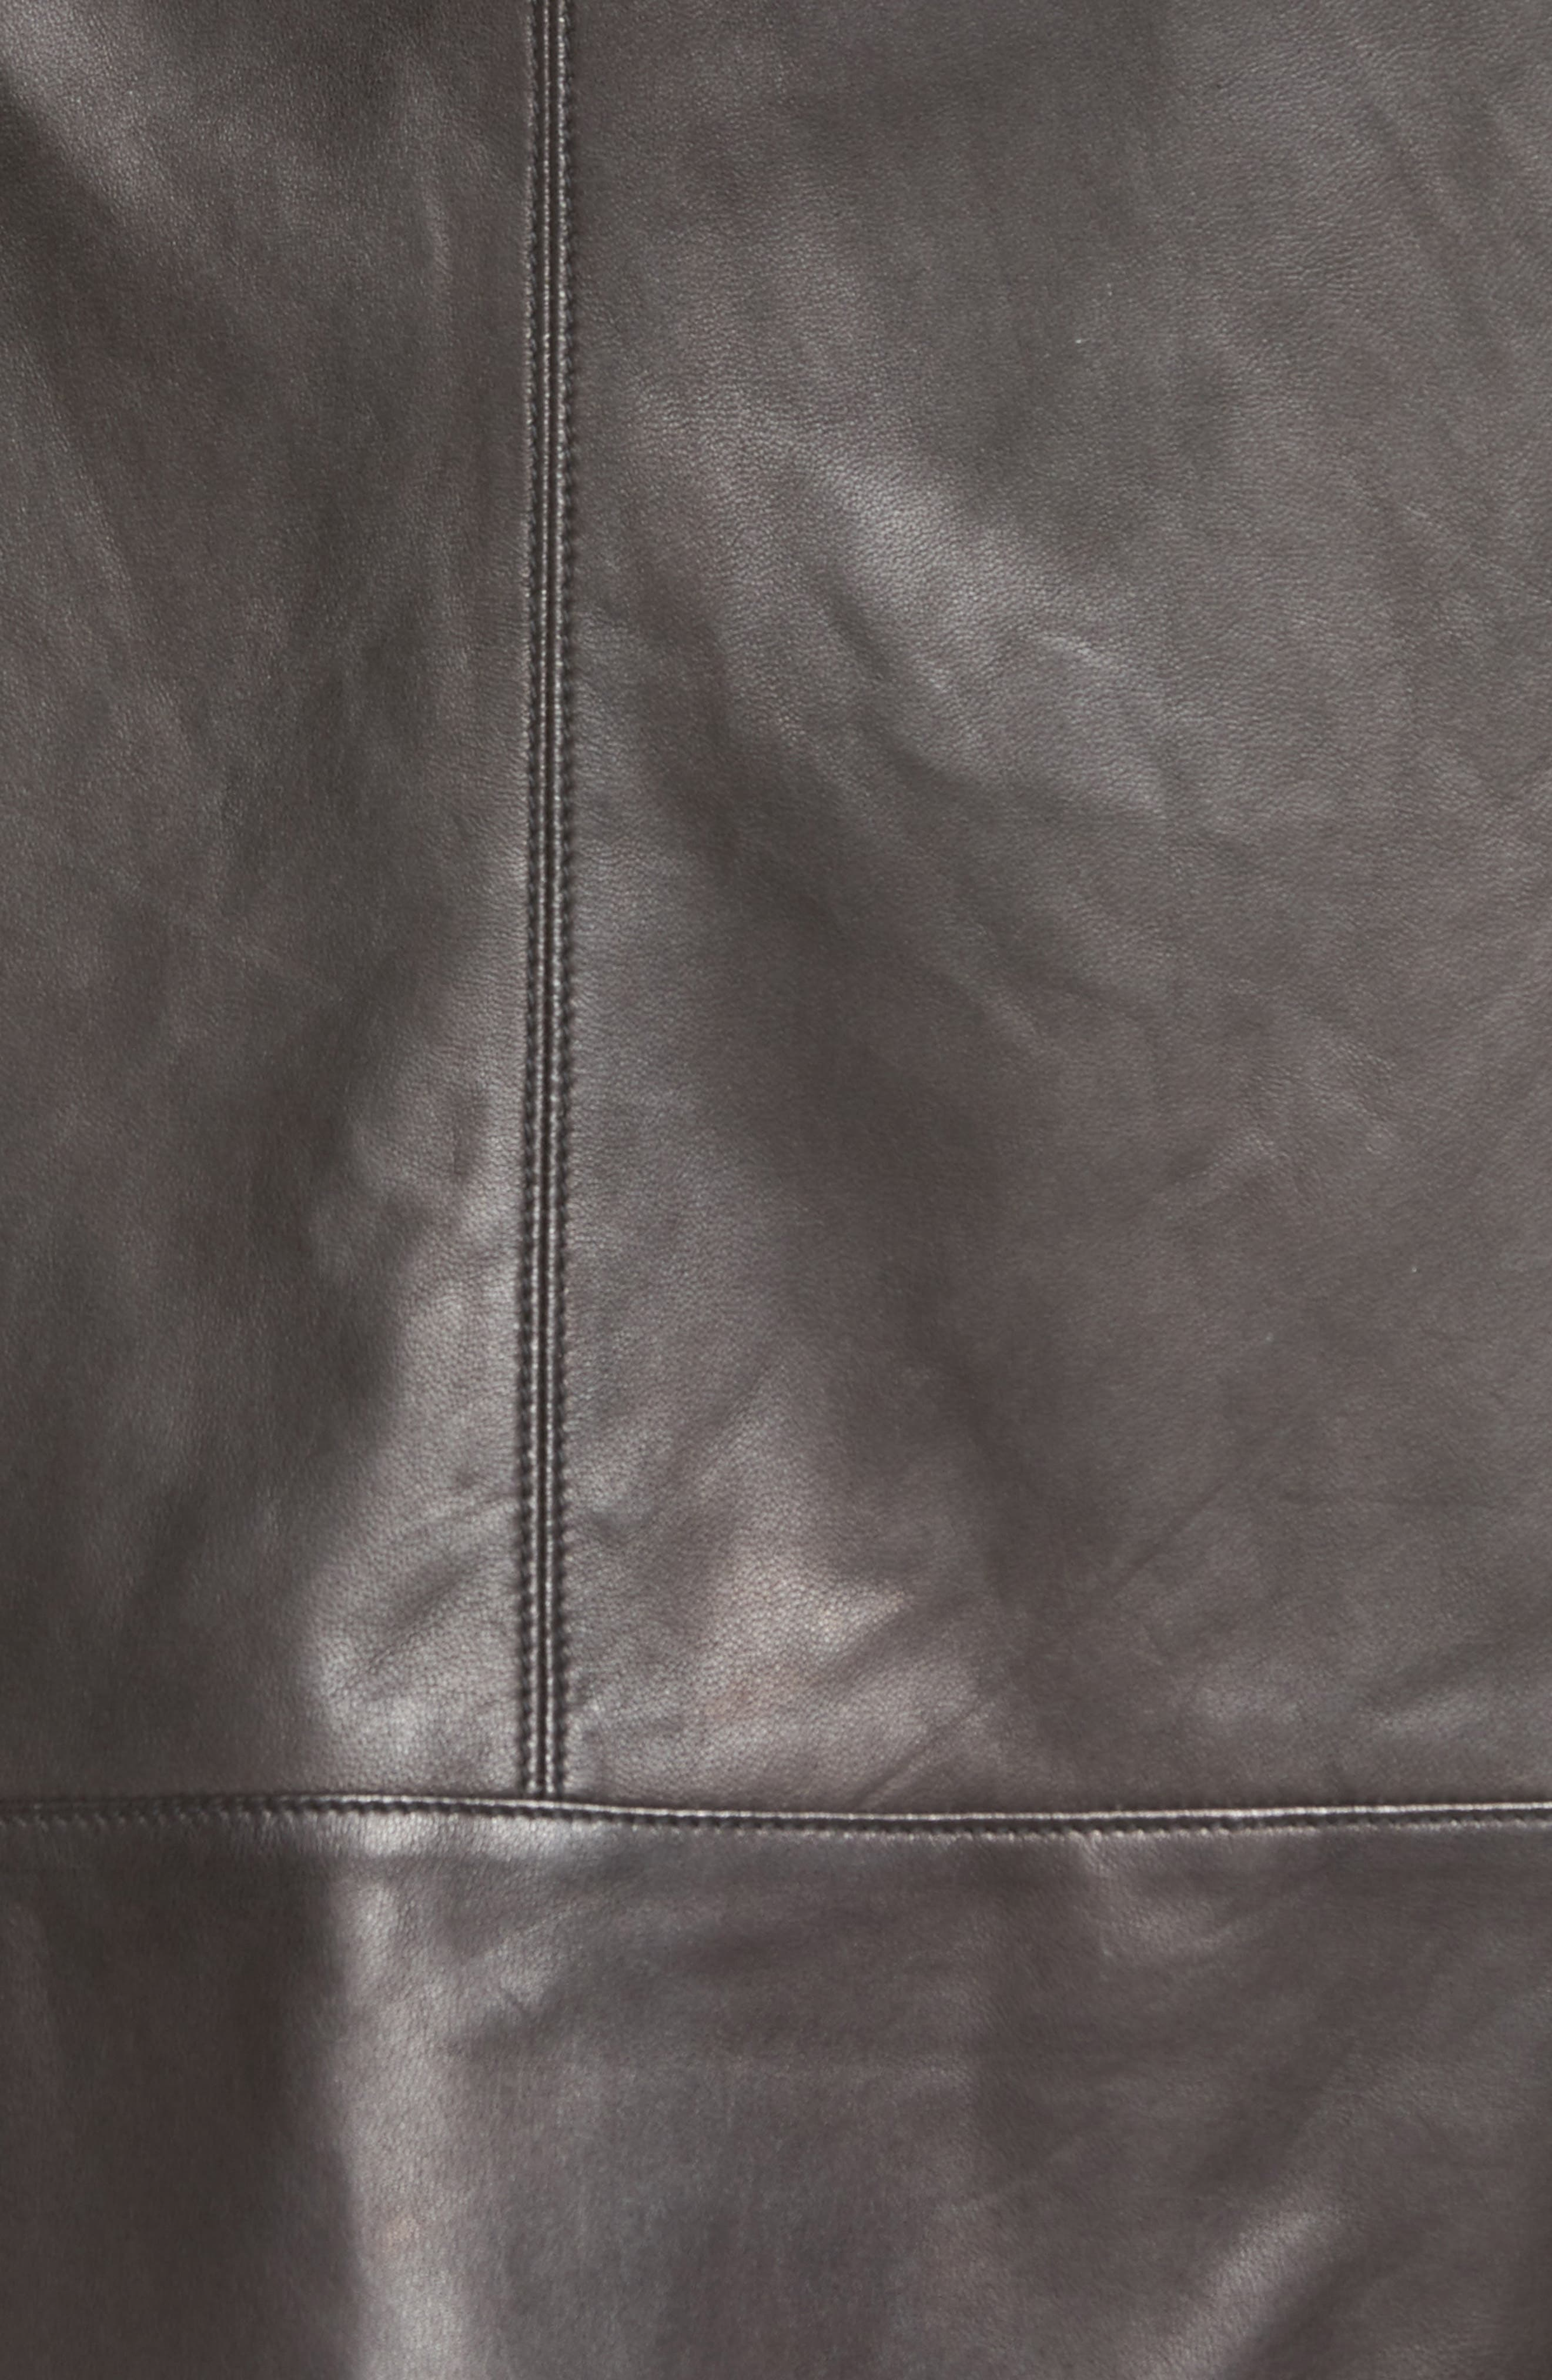 A-Line Leather Skirt,                             Alternate thumbnail 5, color,                             001